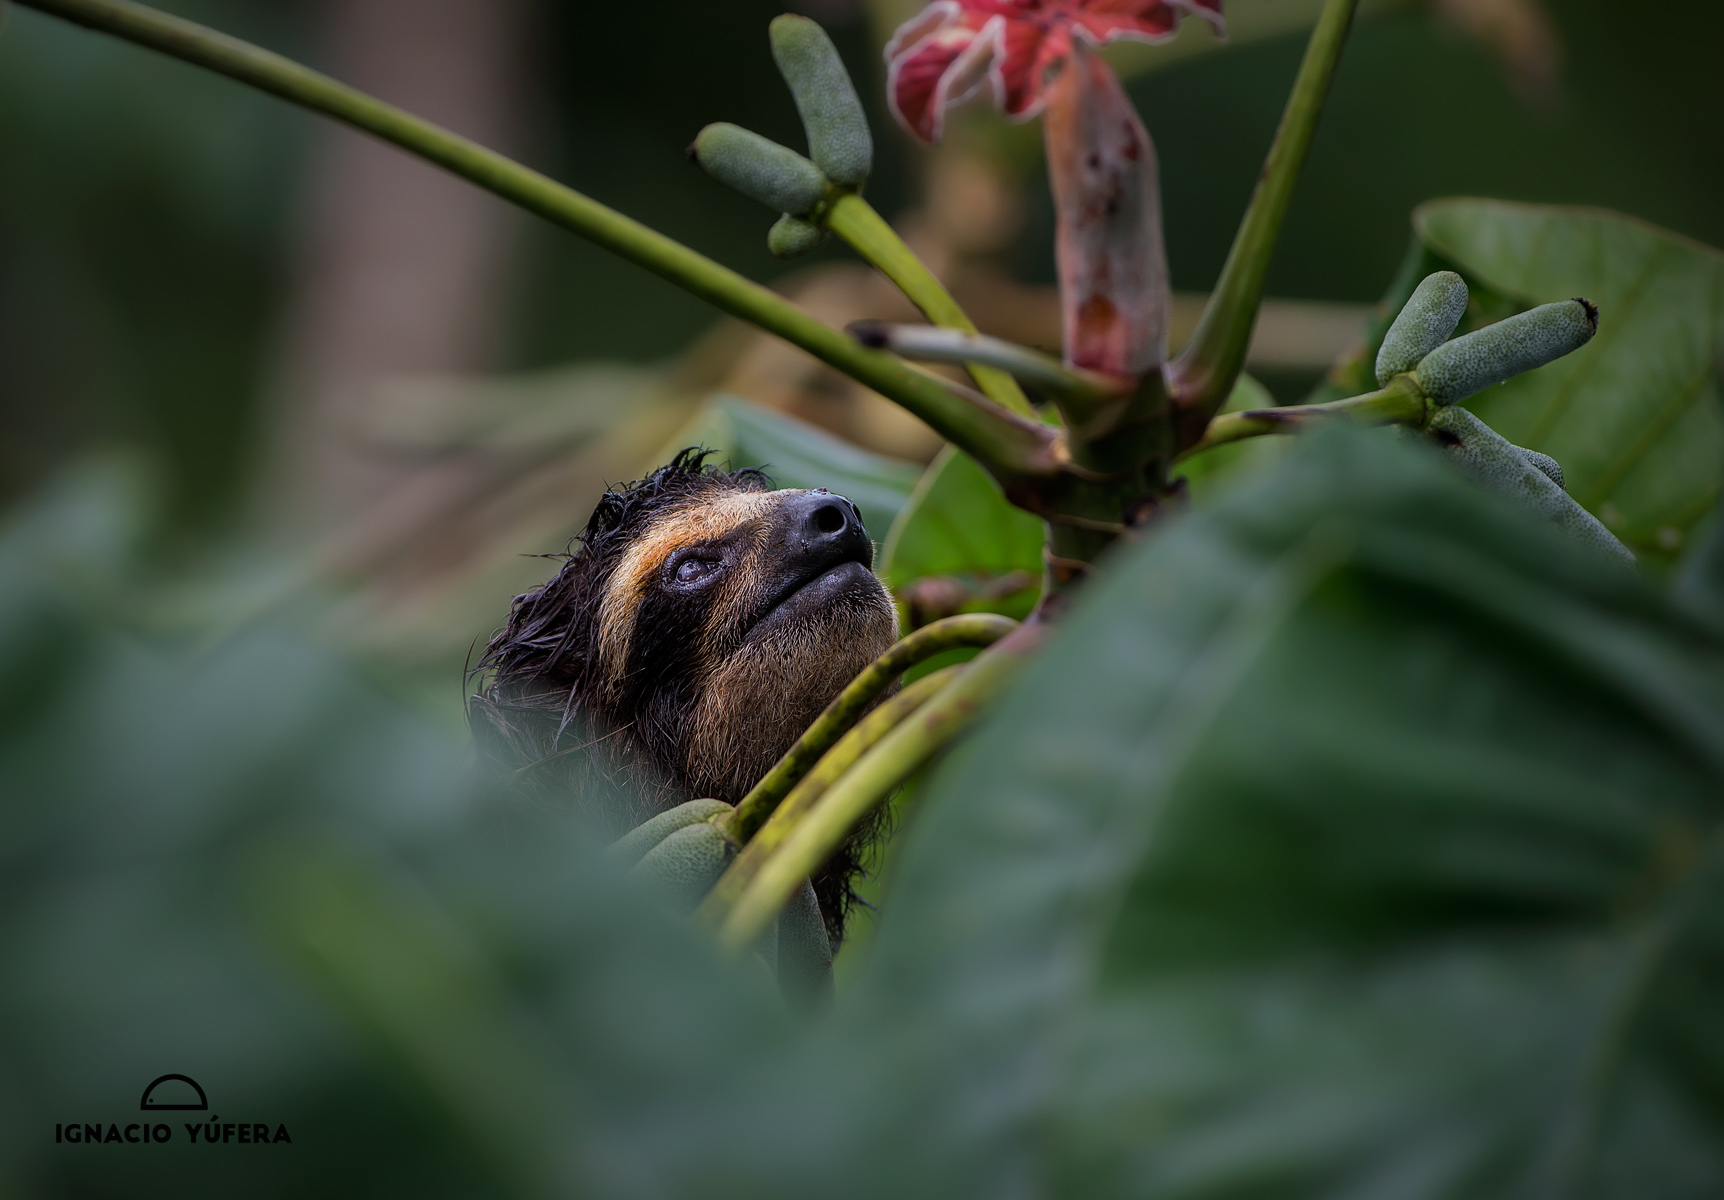 Brown-throated Three-toed sloth (Bradypus variegatus), looking up from vegetation, Panama, July